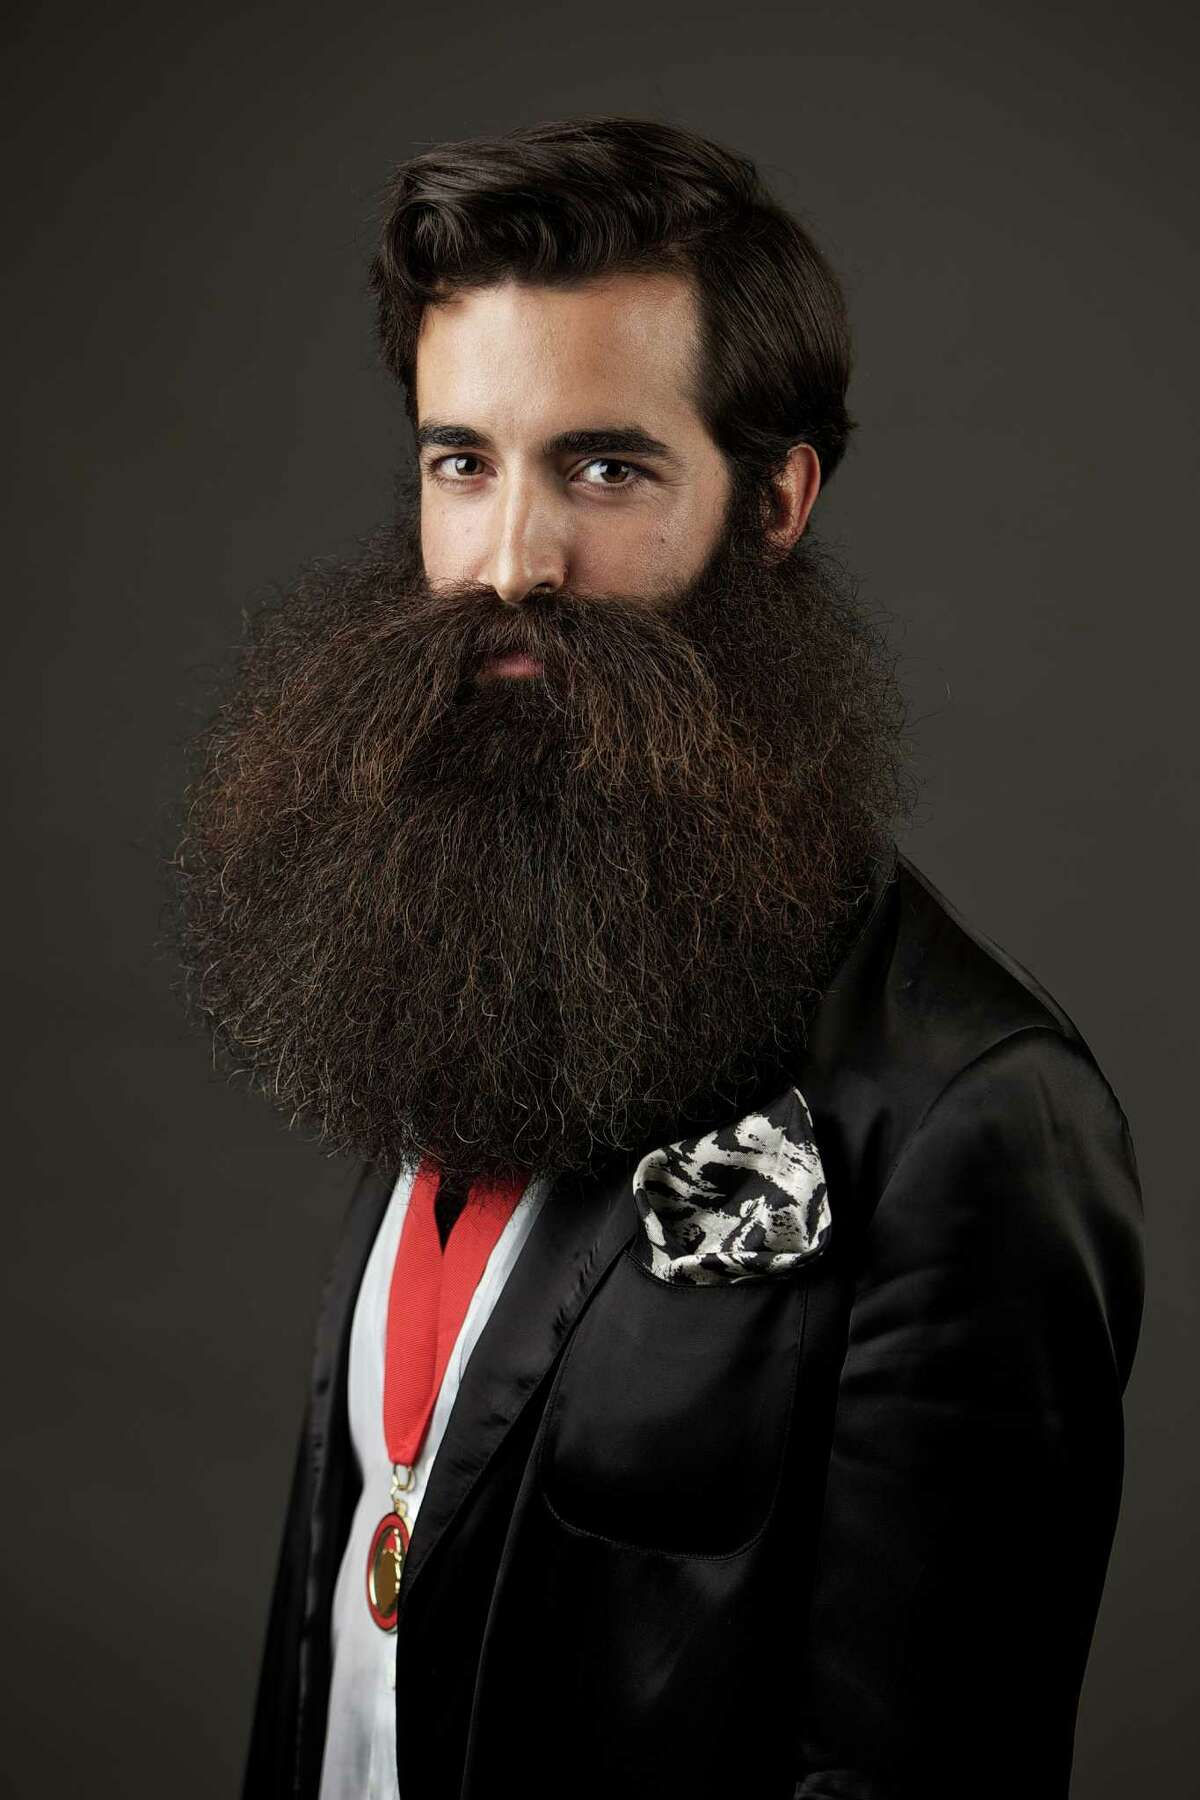 The Just For Men World Beard and Moustache Championships crowned 18 title winners, highlighting the best and boldest examples of facial hair from across the globe.